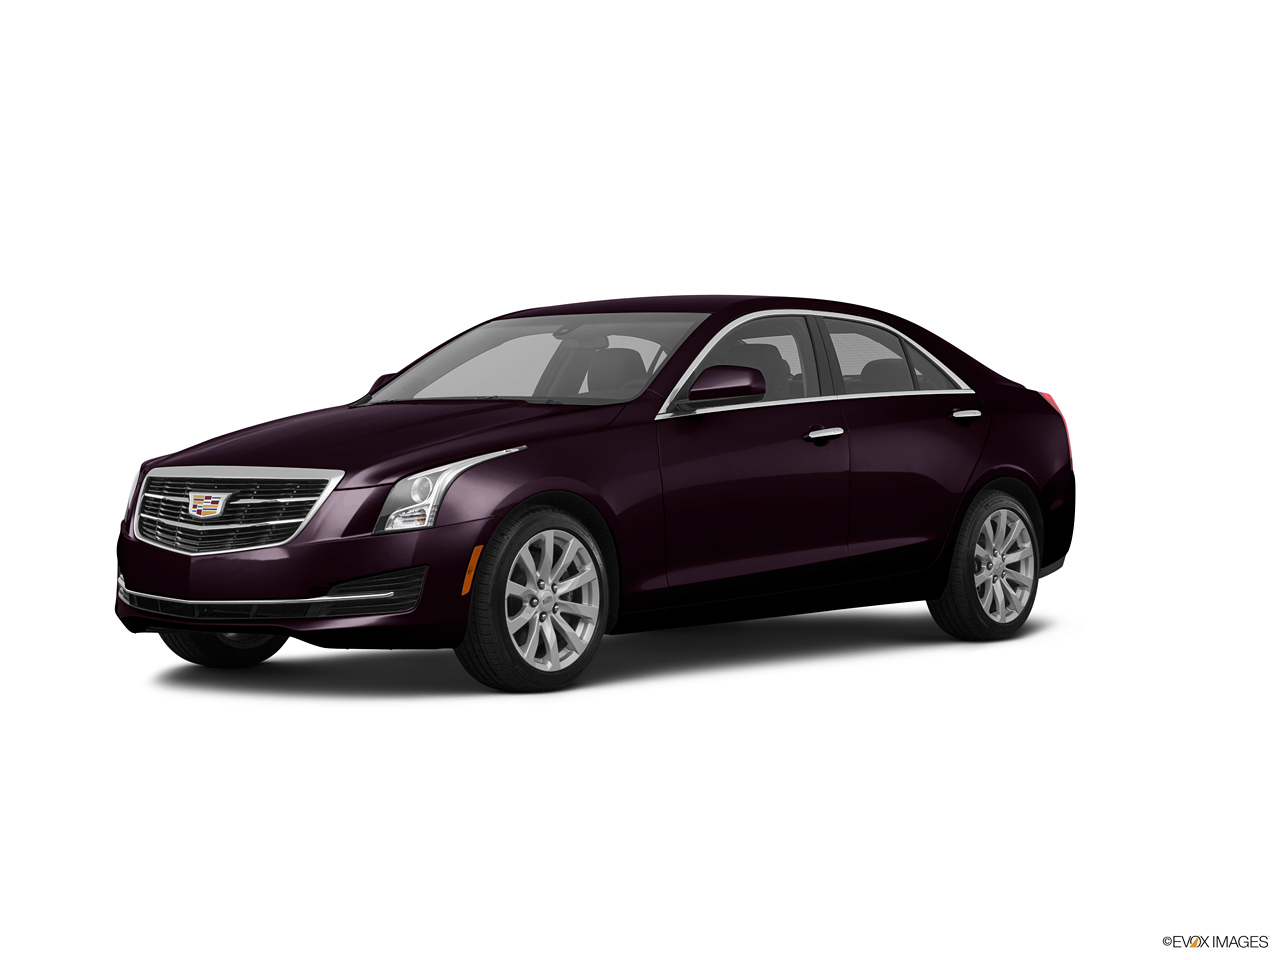 cadillac ats 2017 3 6l premium performance in uae new car prices specs reviews photos. Black Bedroom Furniture Sets. Home Design Ideas